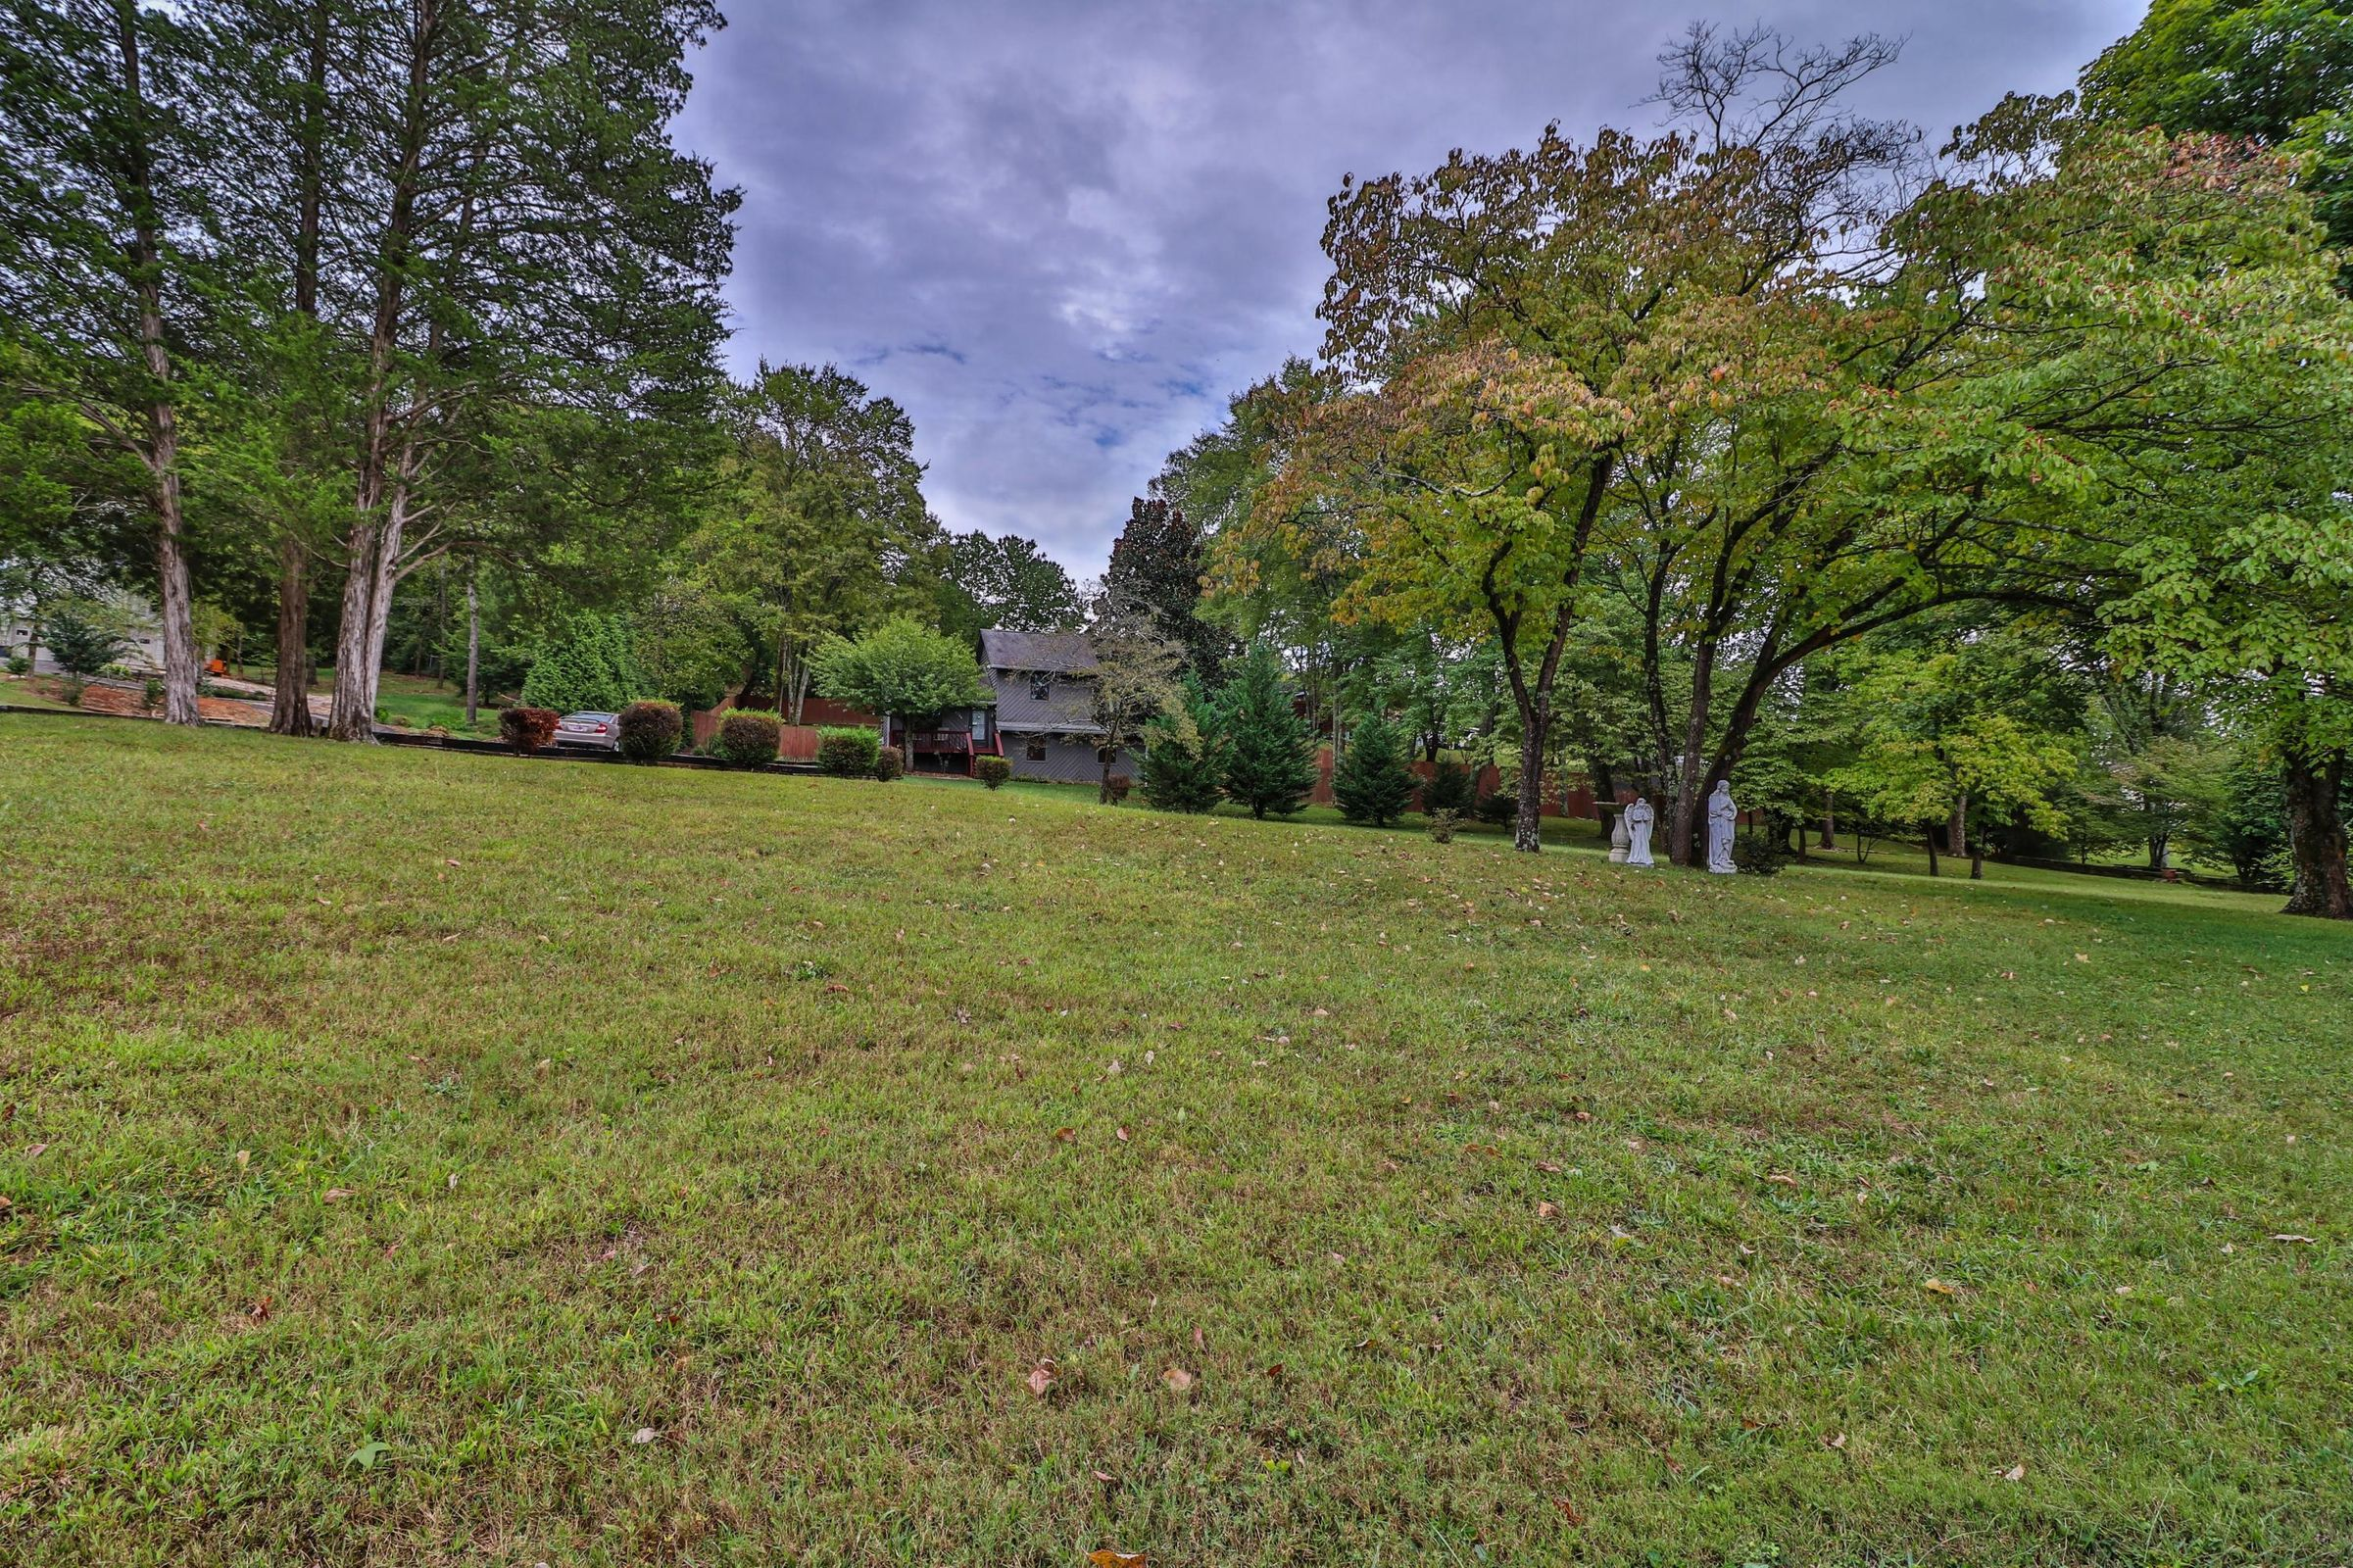 Full Backyard view for both lots to pine